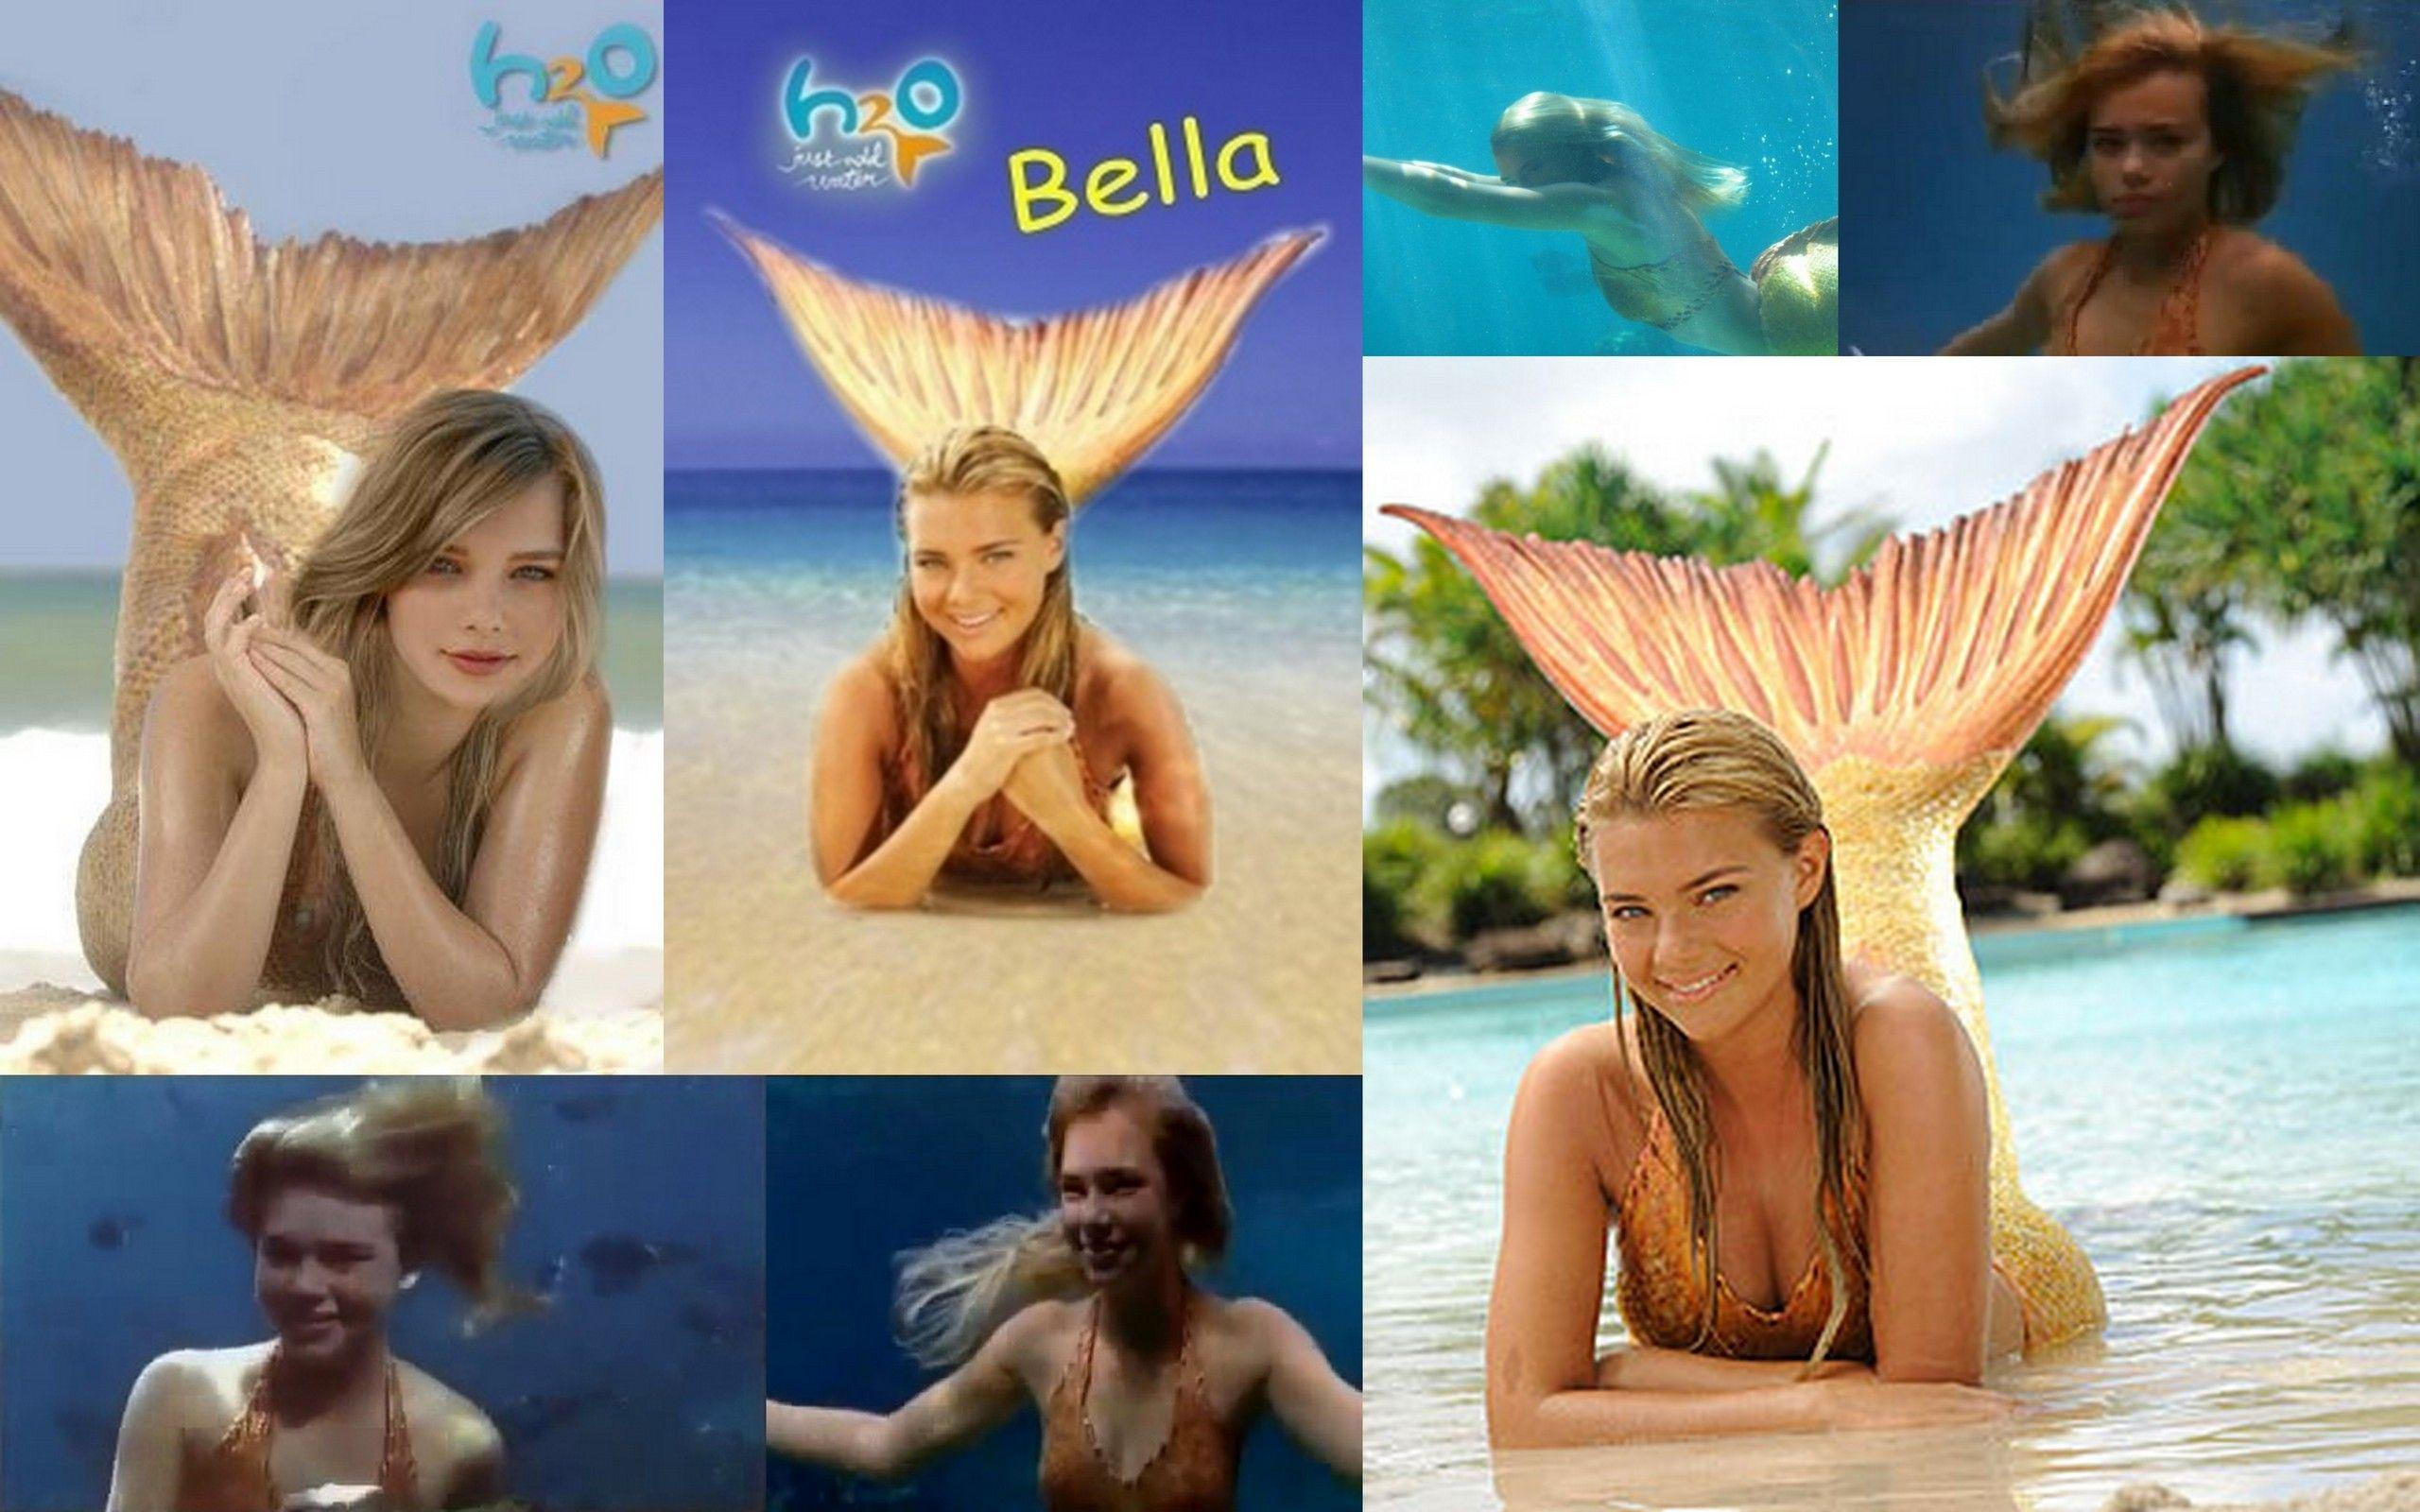 H2o Just Add Water Girls Images Bella Wallpaper HD And